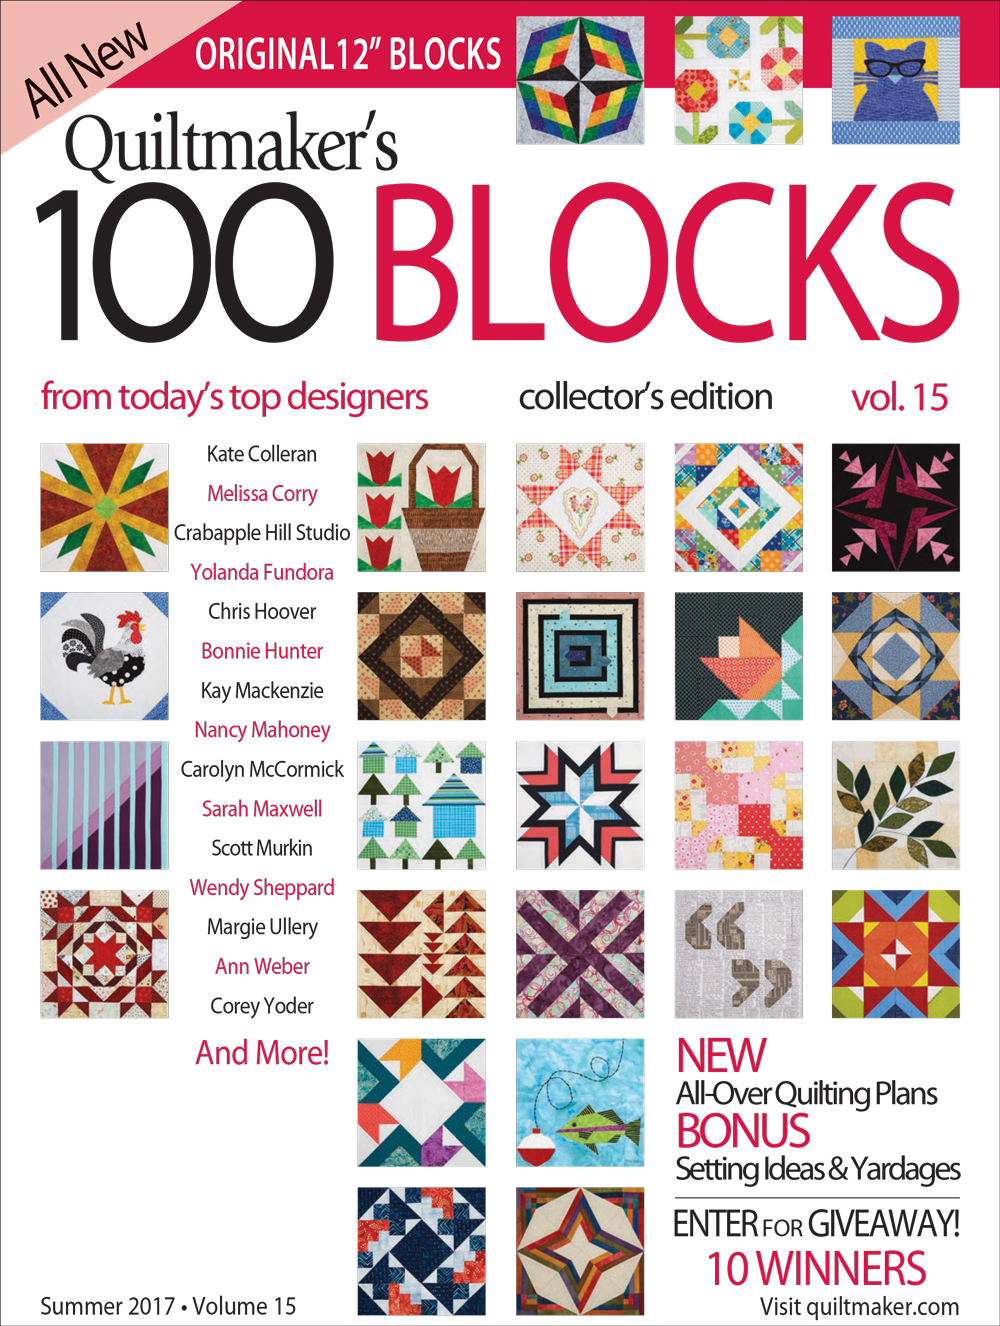 Vol15 COVER Coming Next Week: 100 Blocks Vol. 15 Blog Tour